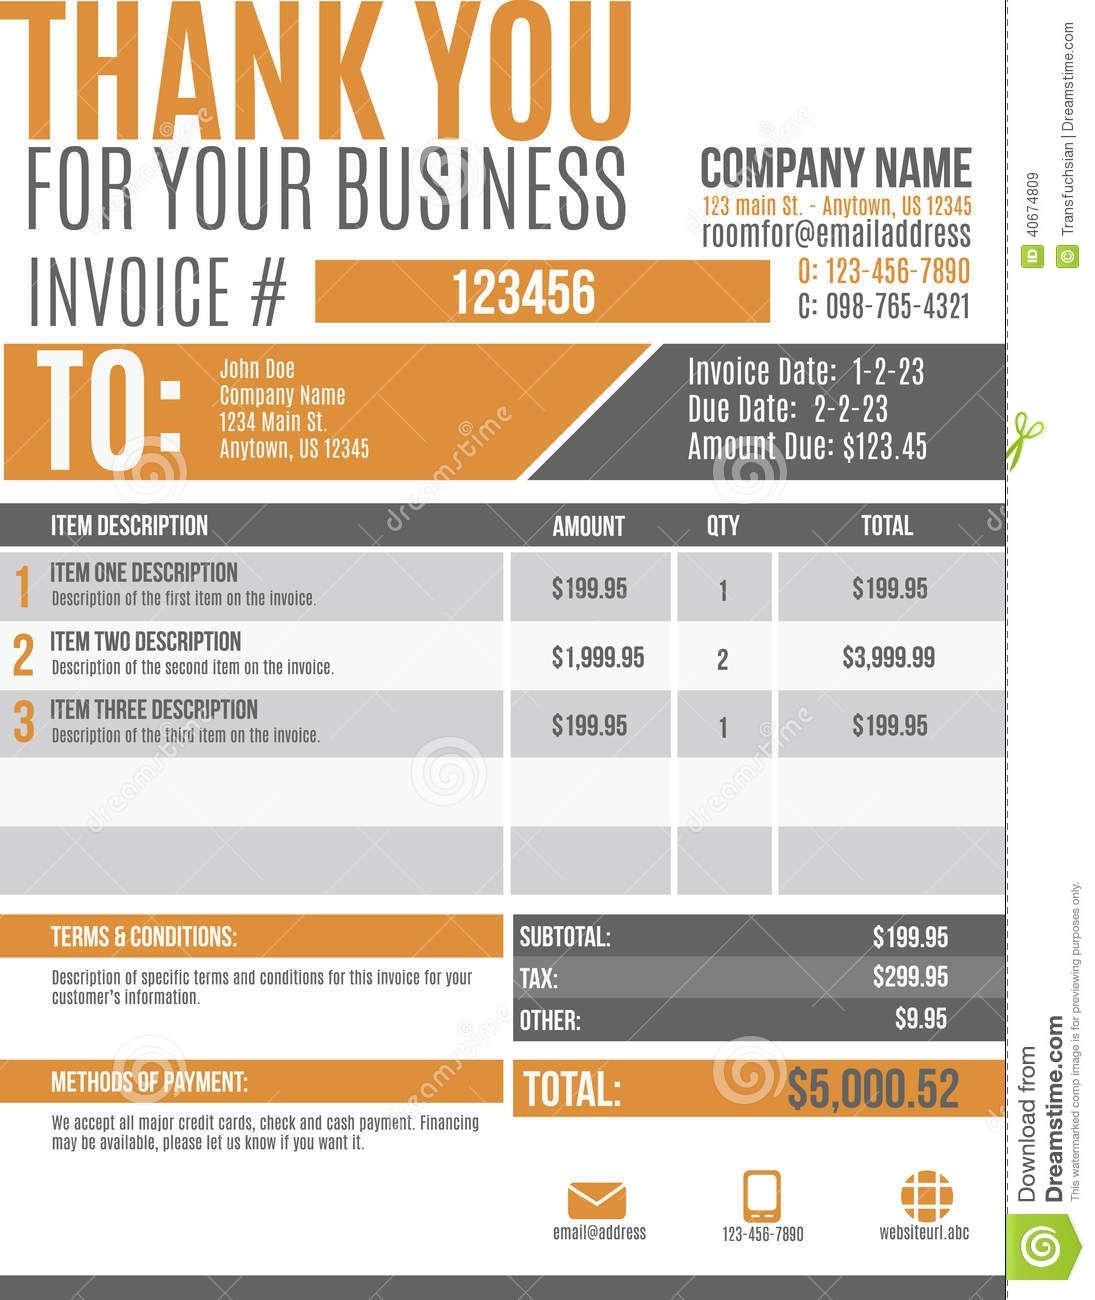 invoice design free invoice template ideas design invoice template free